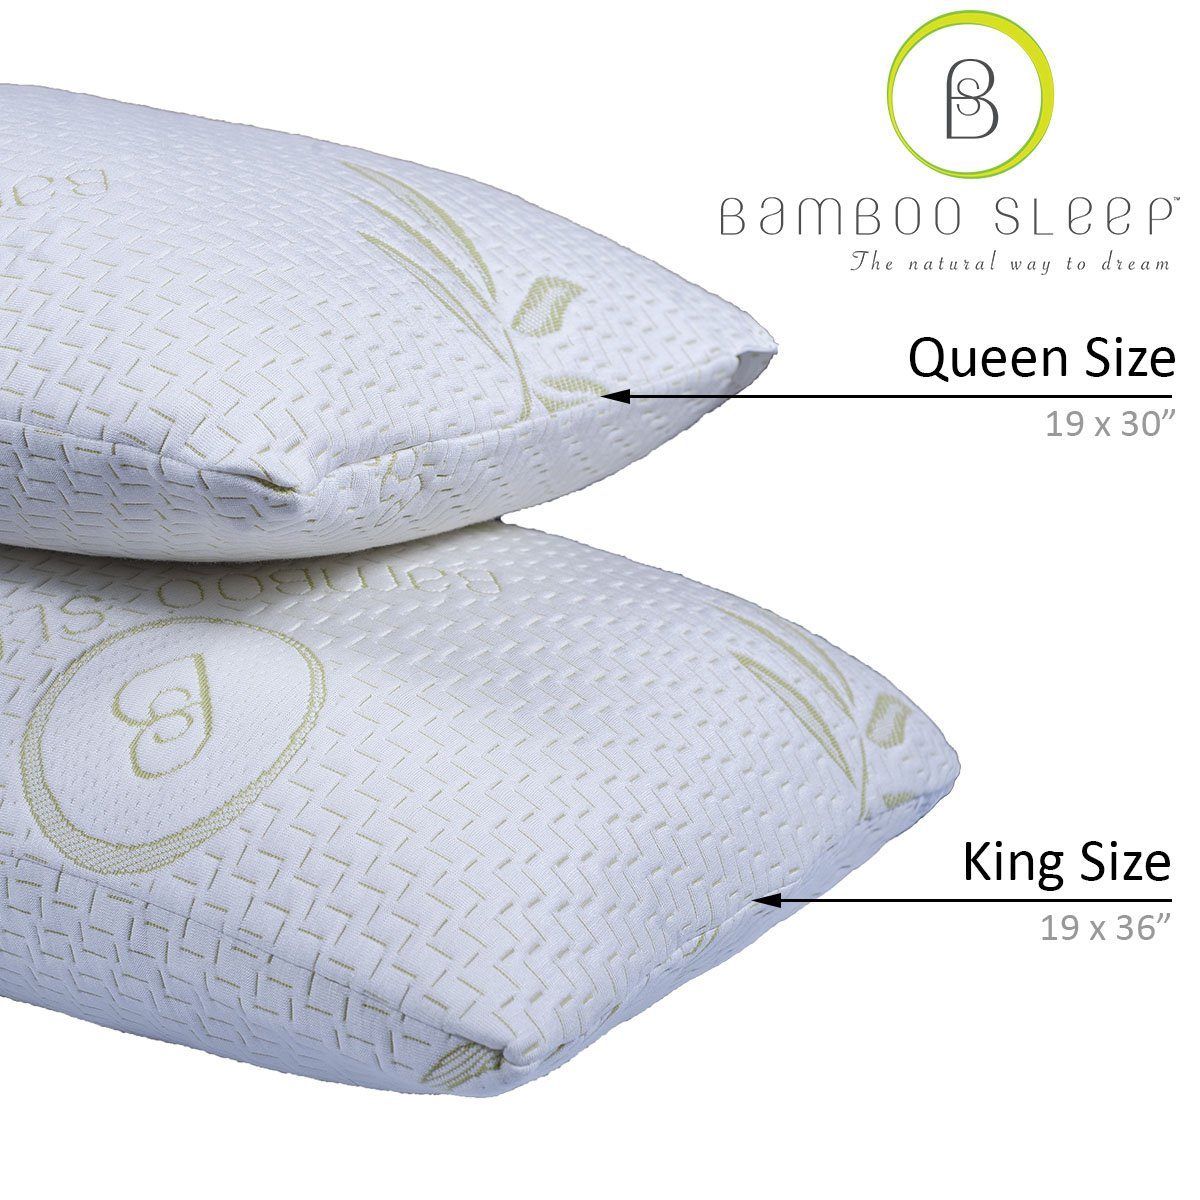 Hotel Comfort Bamboo Sleep Premium Bamboo Memory Foam Pillow Set. Ultra Cool Hypoallergenic Washable Bamboo Cover USA Designed (2 Pack Queen)